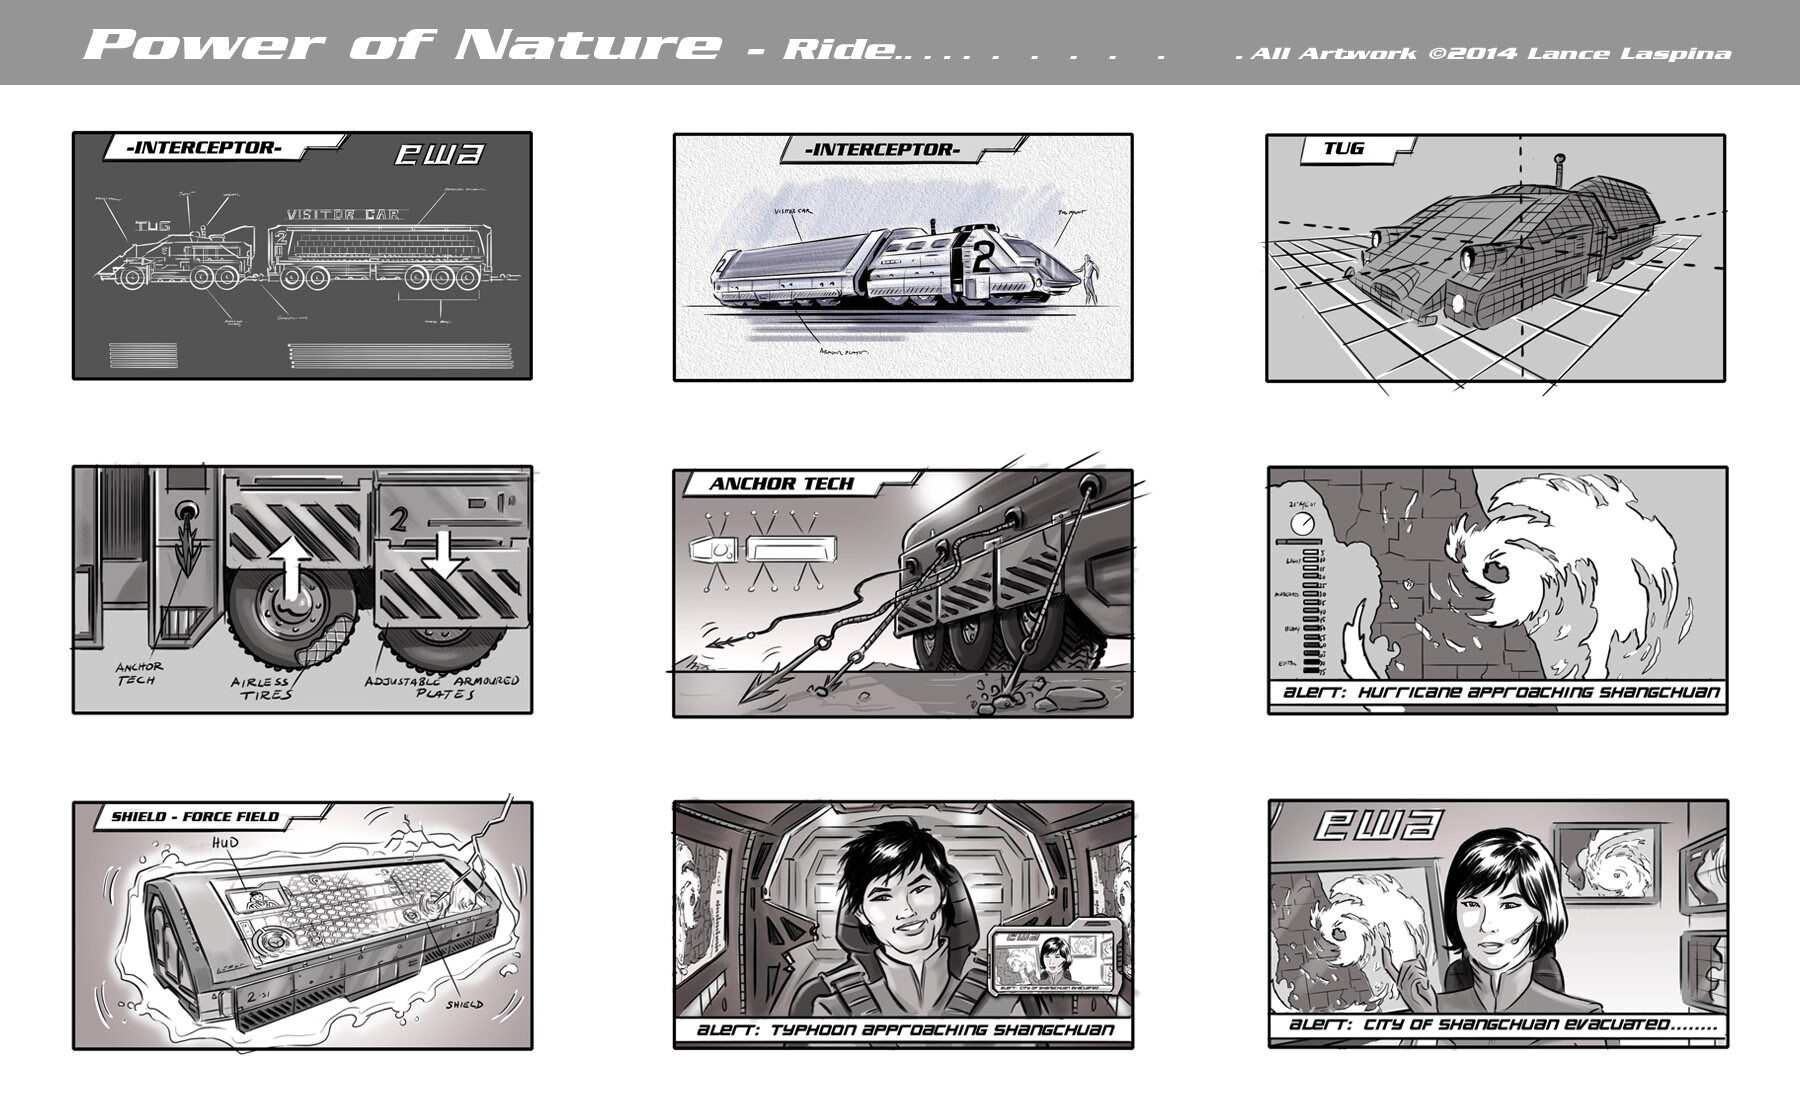 Lance laspina as storyboardsamples 22